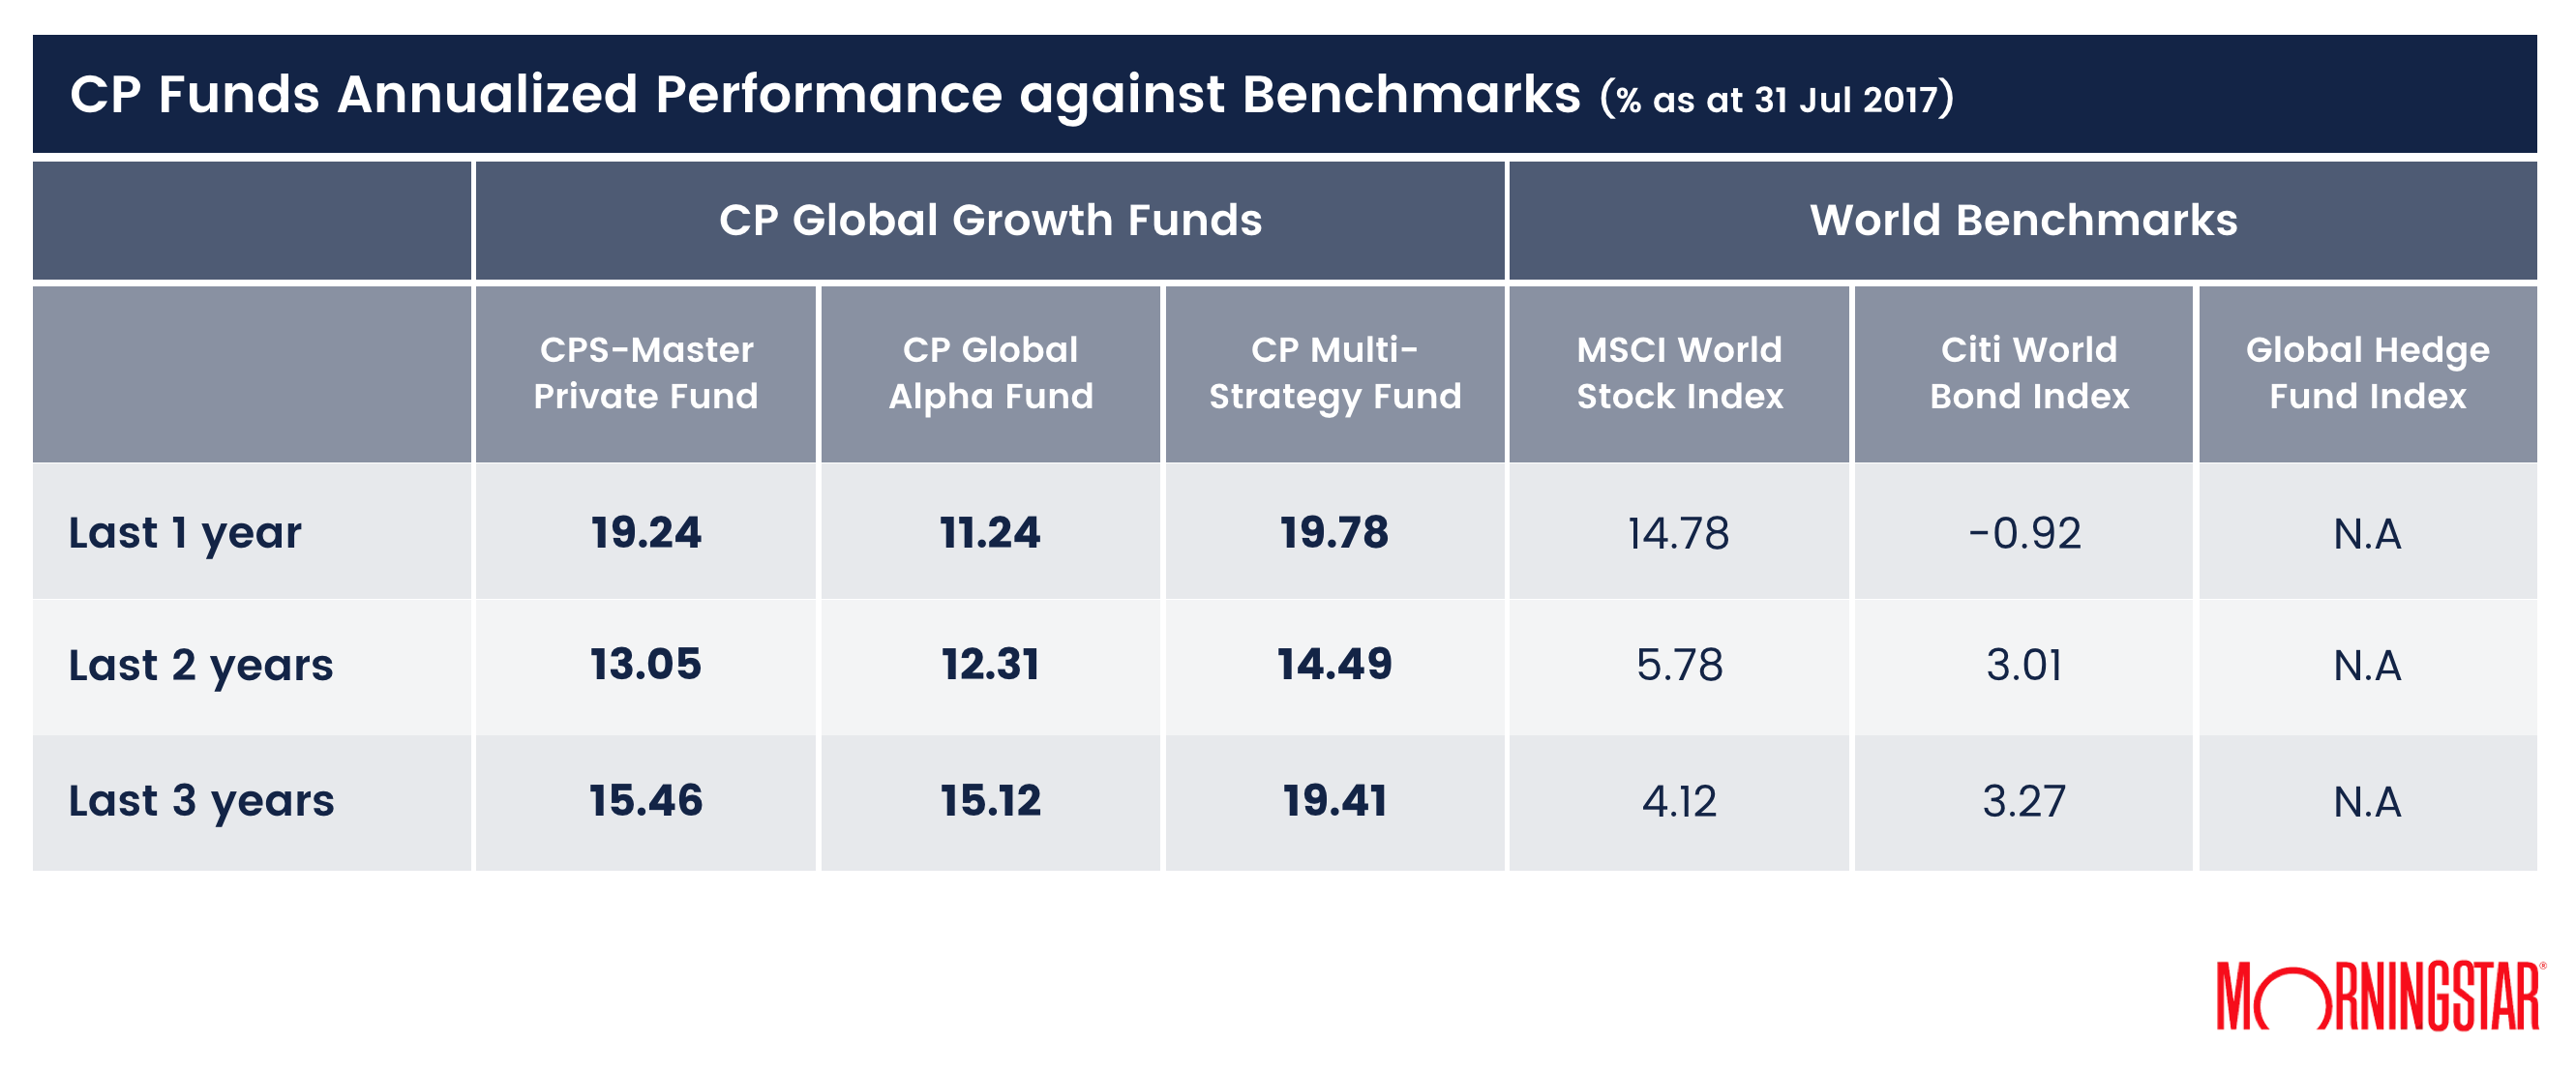 cp-global-funds-annualized-performance-against-benchmarks-31jul2017